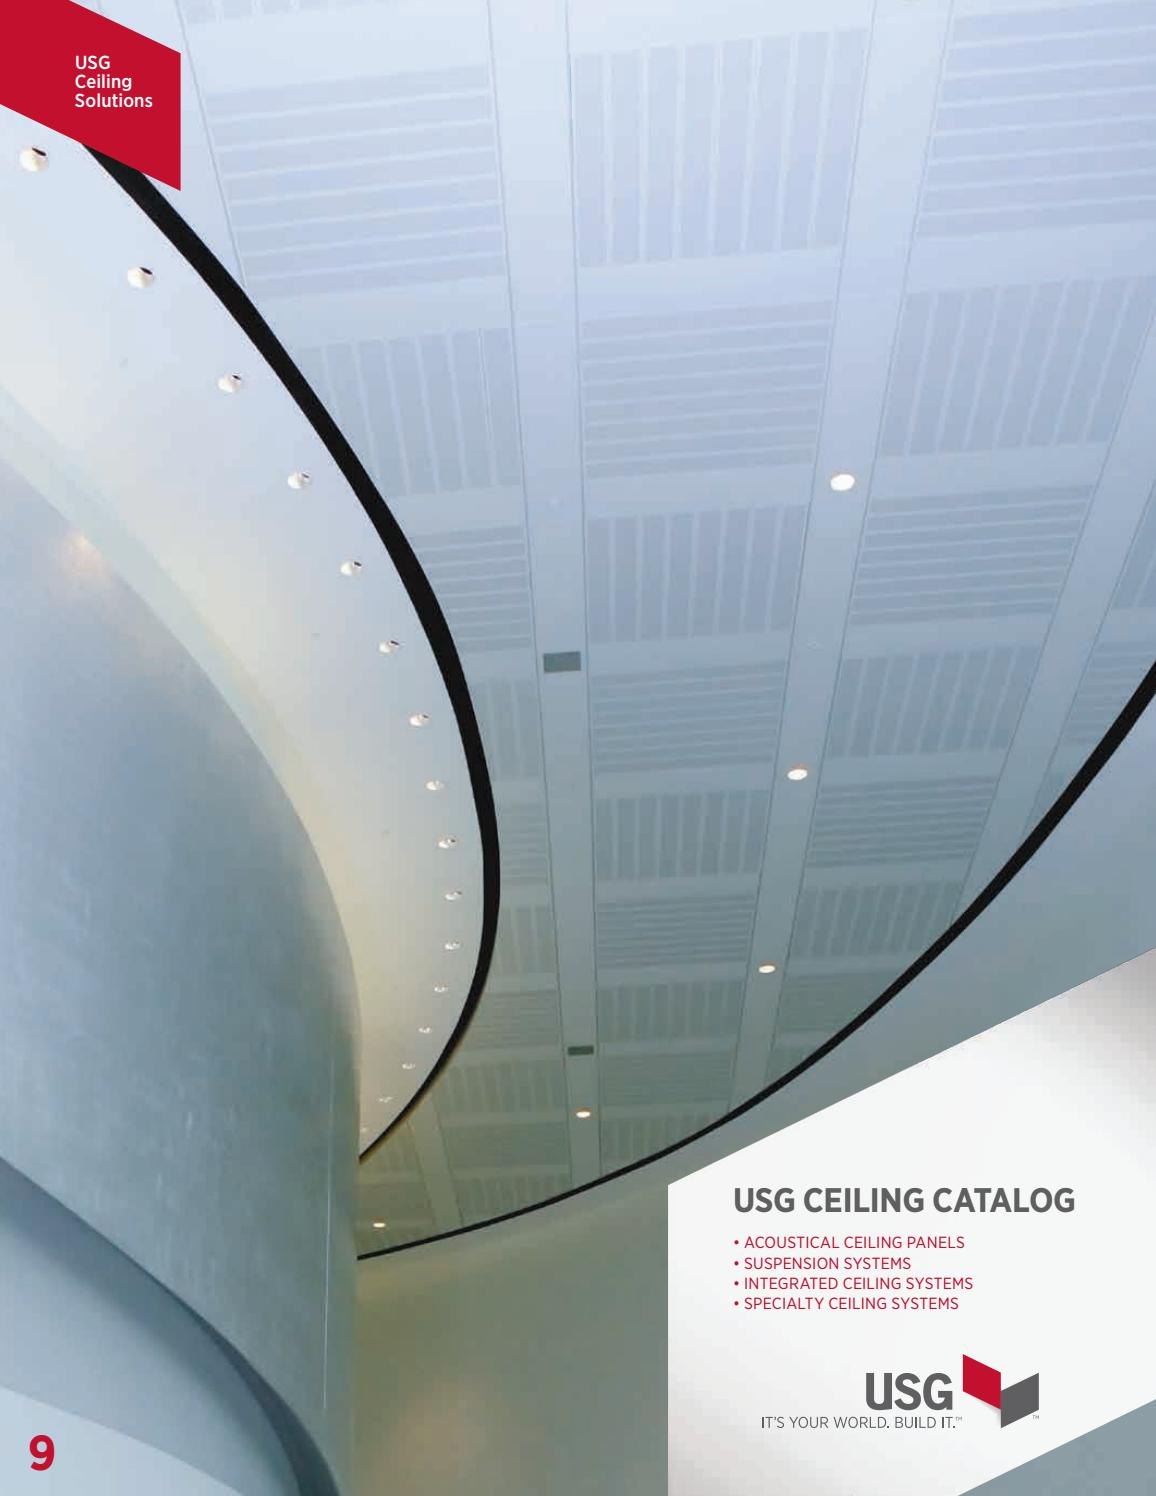 Usg ceilings systems catalog en sc2000 by arch essam issuu dailygadgetfo Choice Image